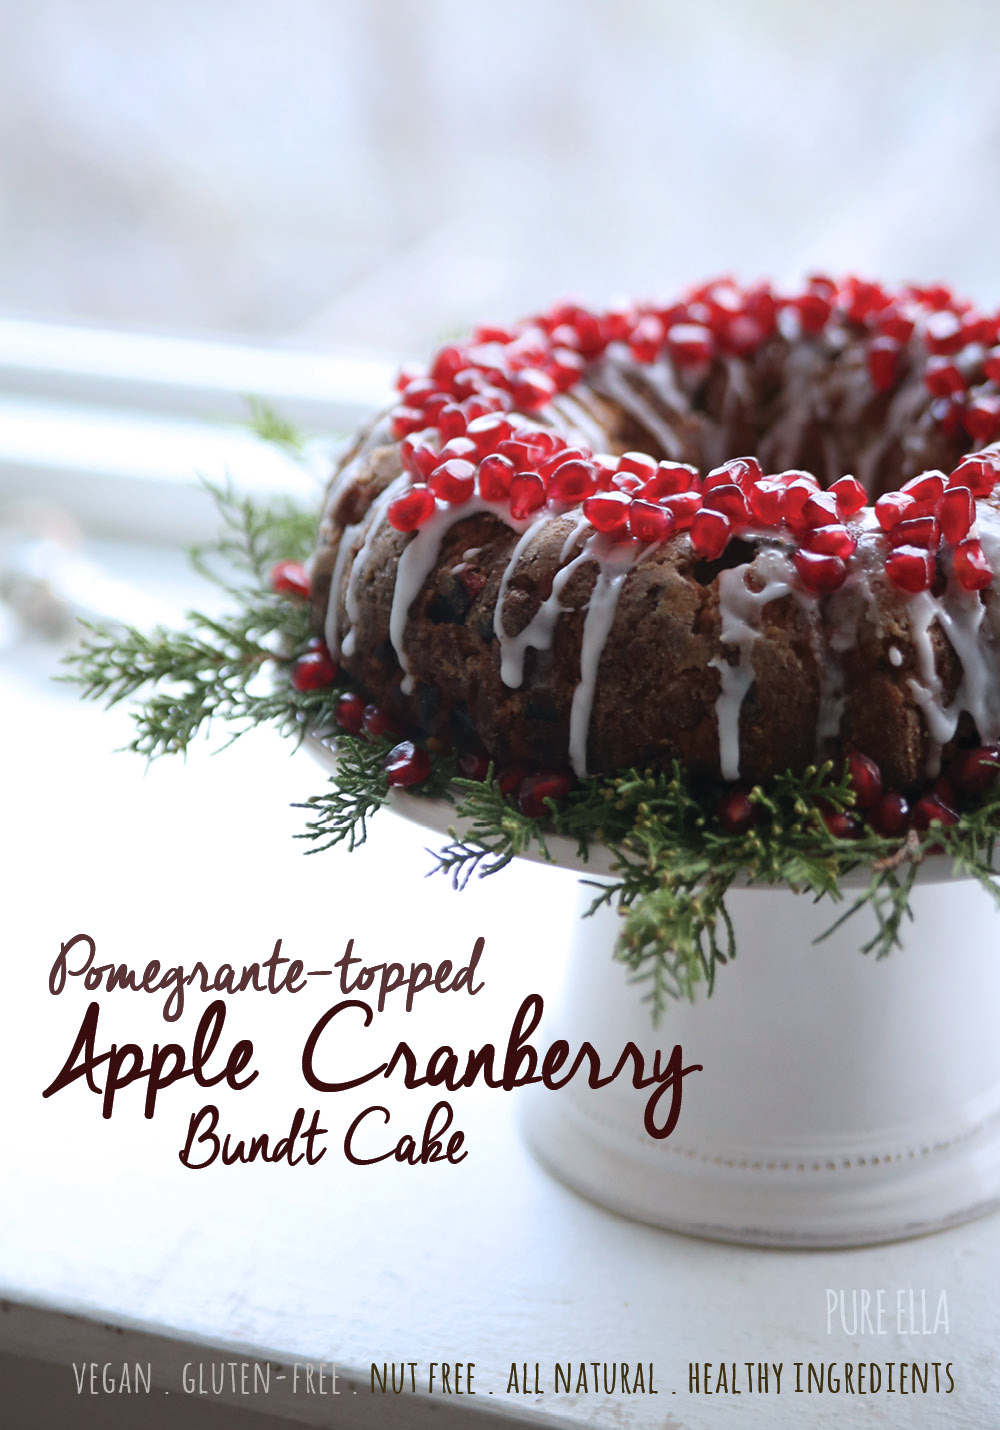 Pure-Ella-Gluten-free-Vegan-Apple-Cranberry-Bundt-Cake